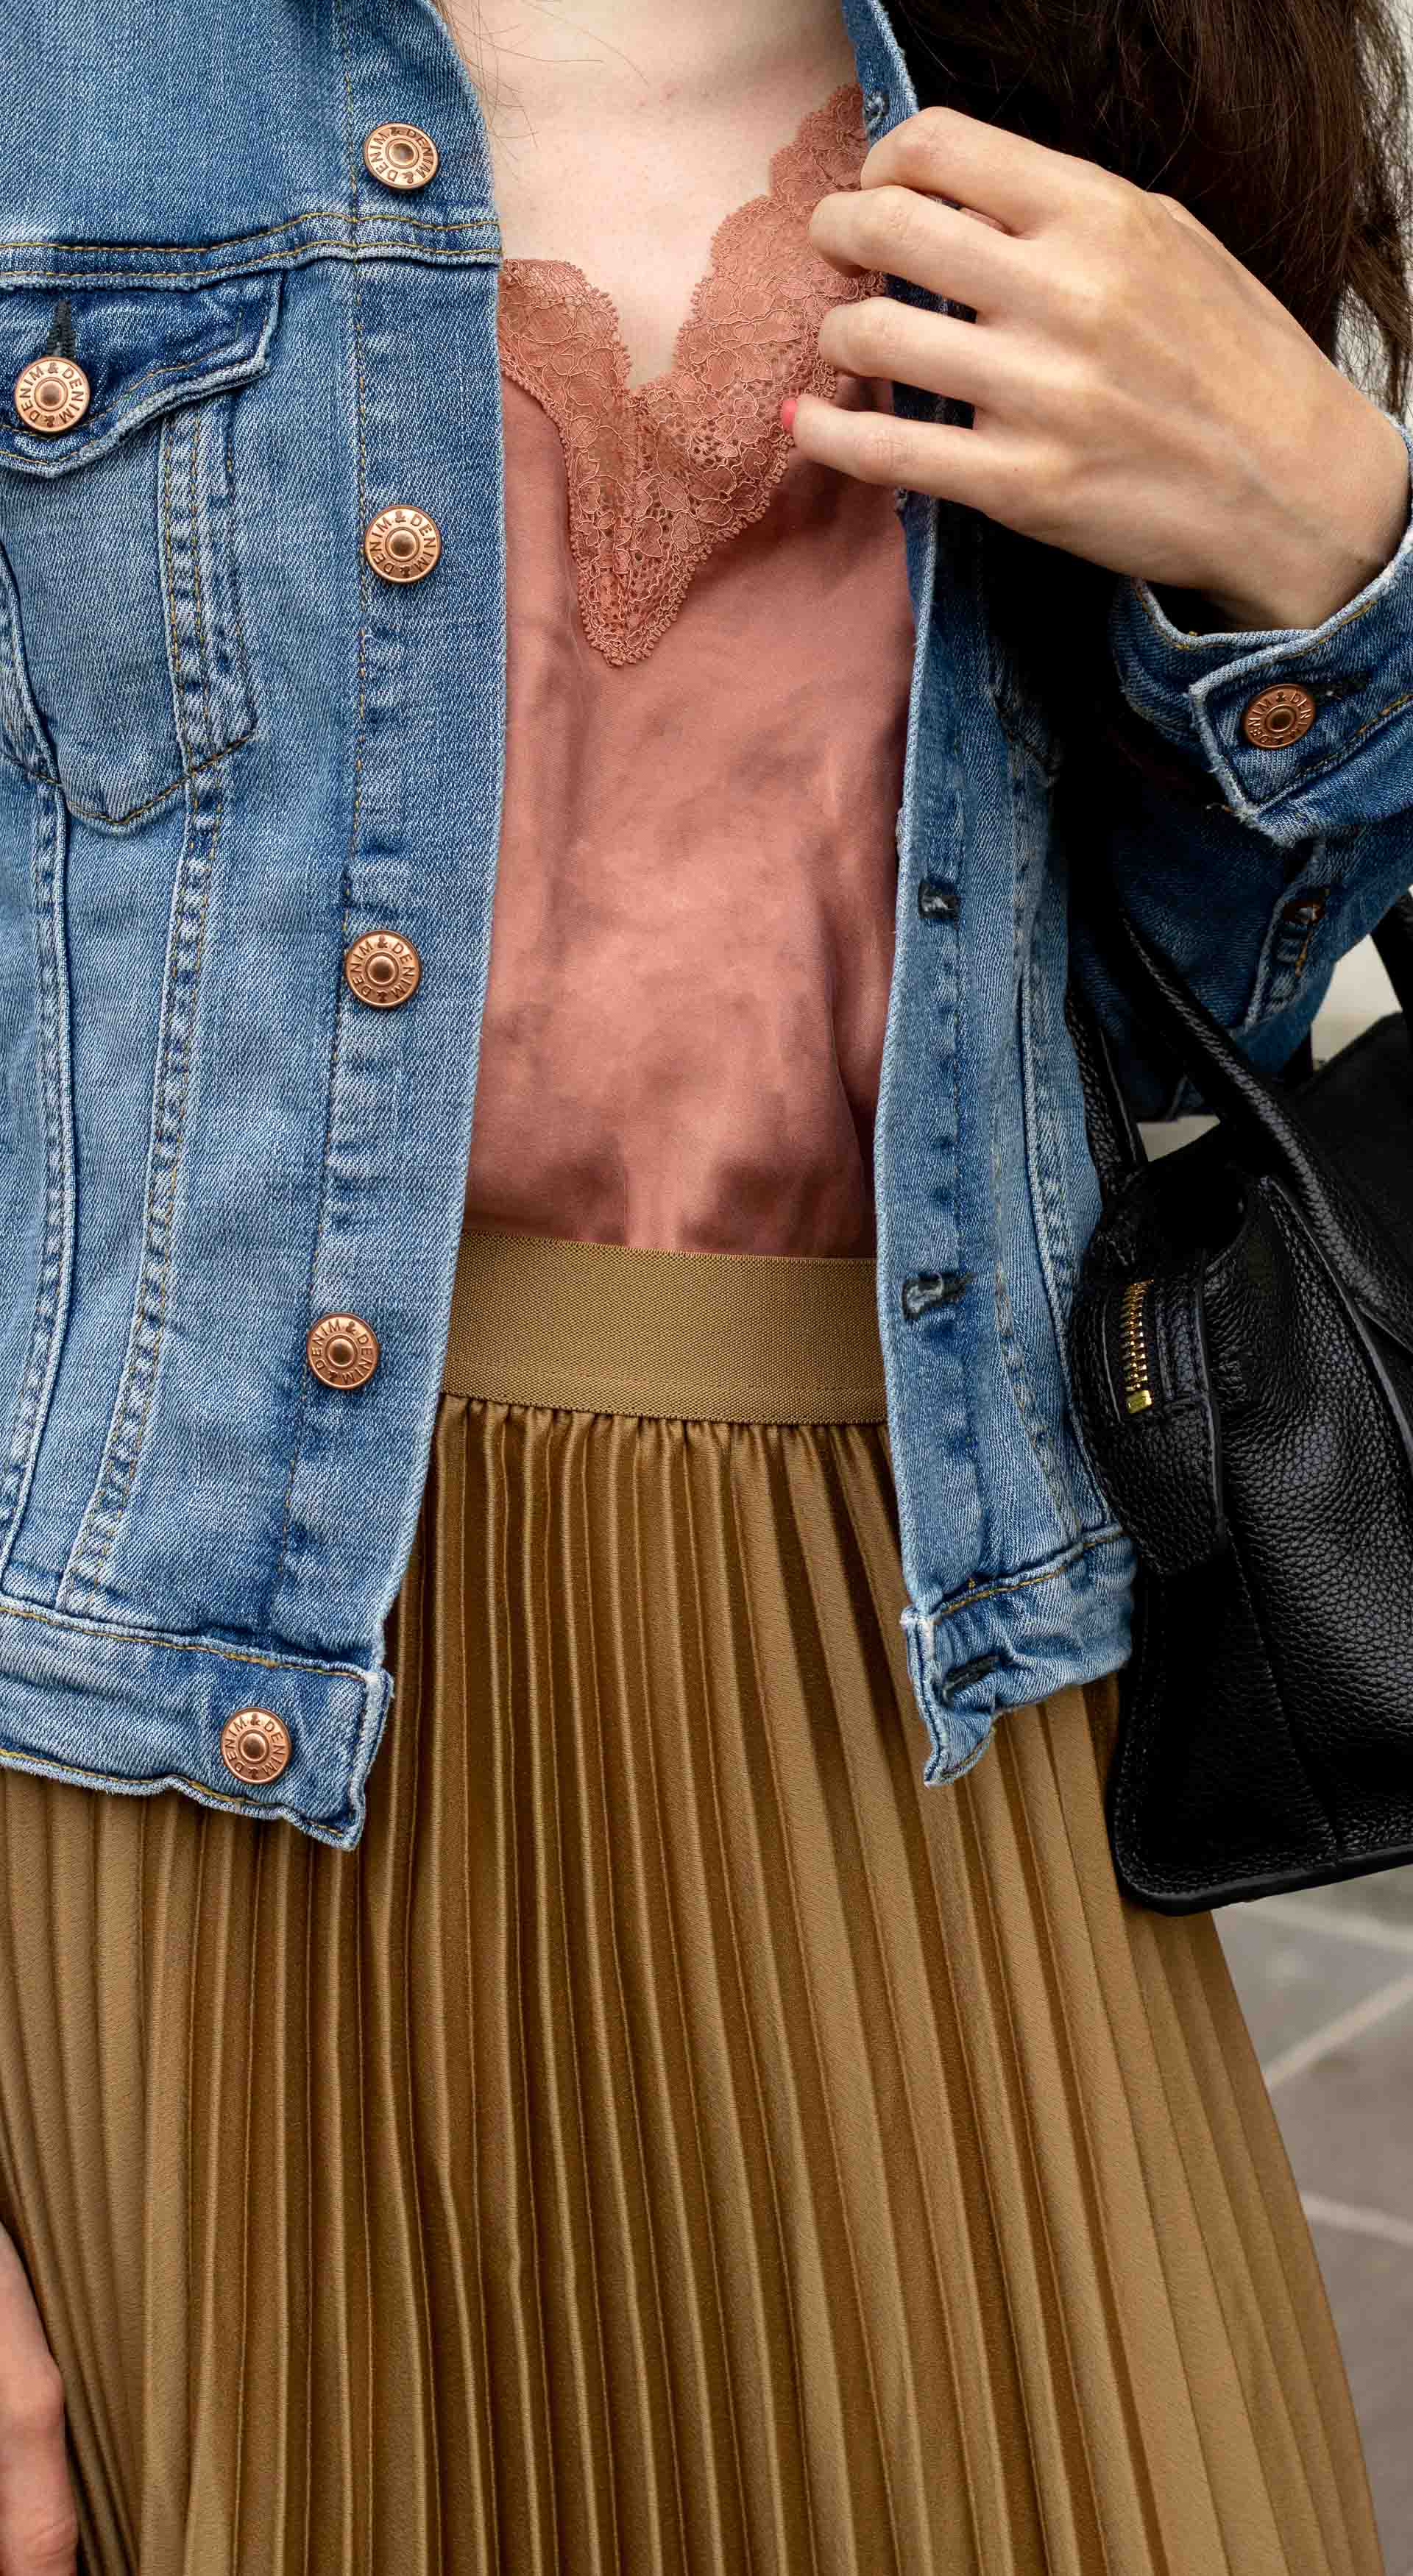 Fashion blogger Veronika Lipar of Brunette from Wall Street dressed in casual summer to fall outfit H&M denim jacket Etam slip top H&M gold pleated midi skirt